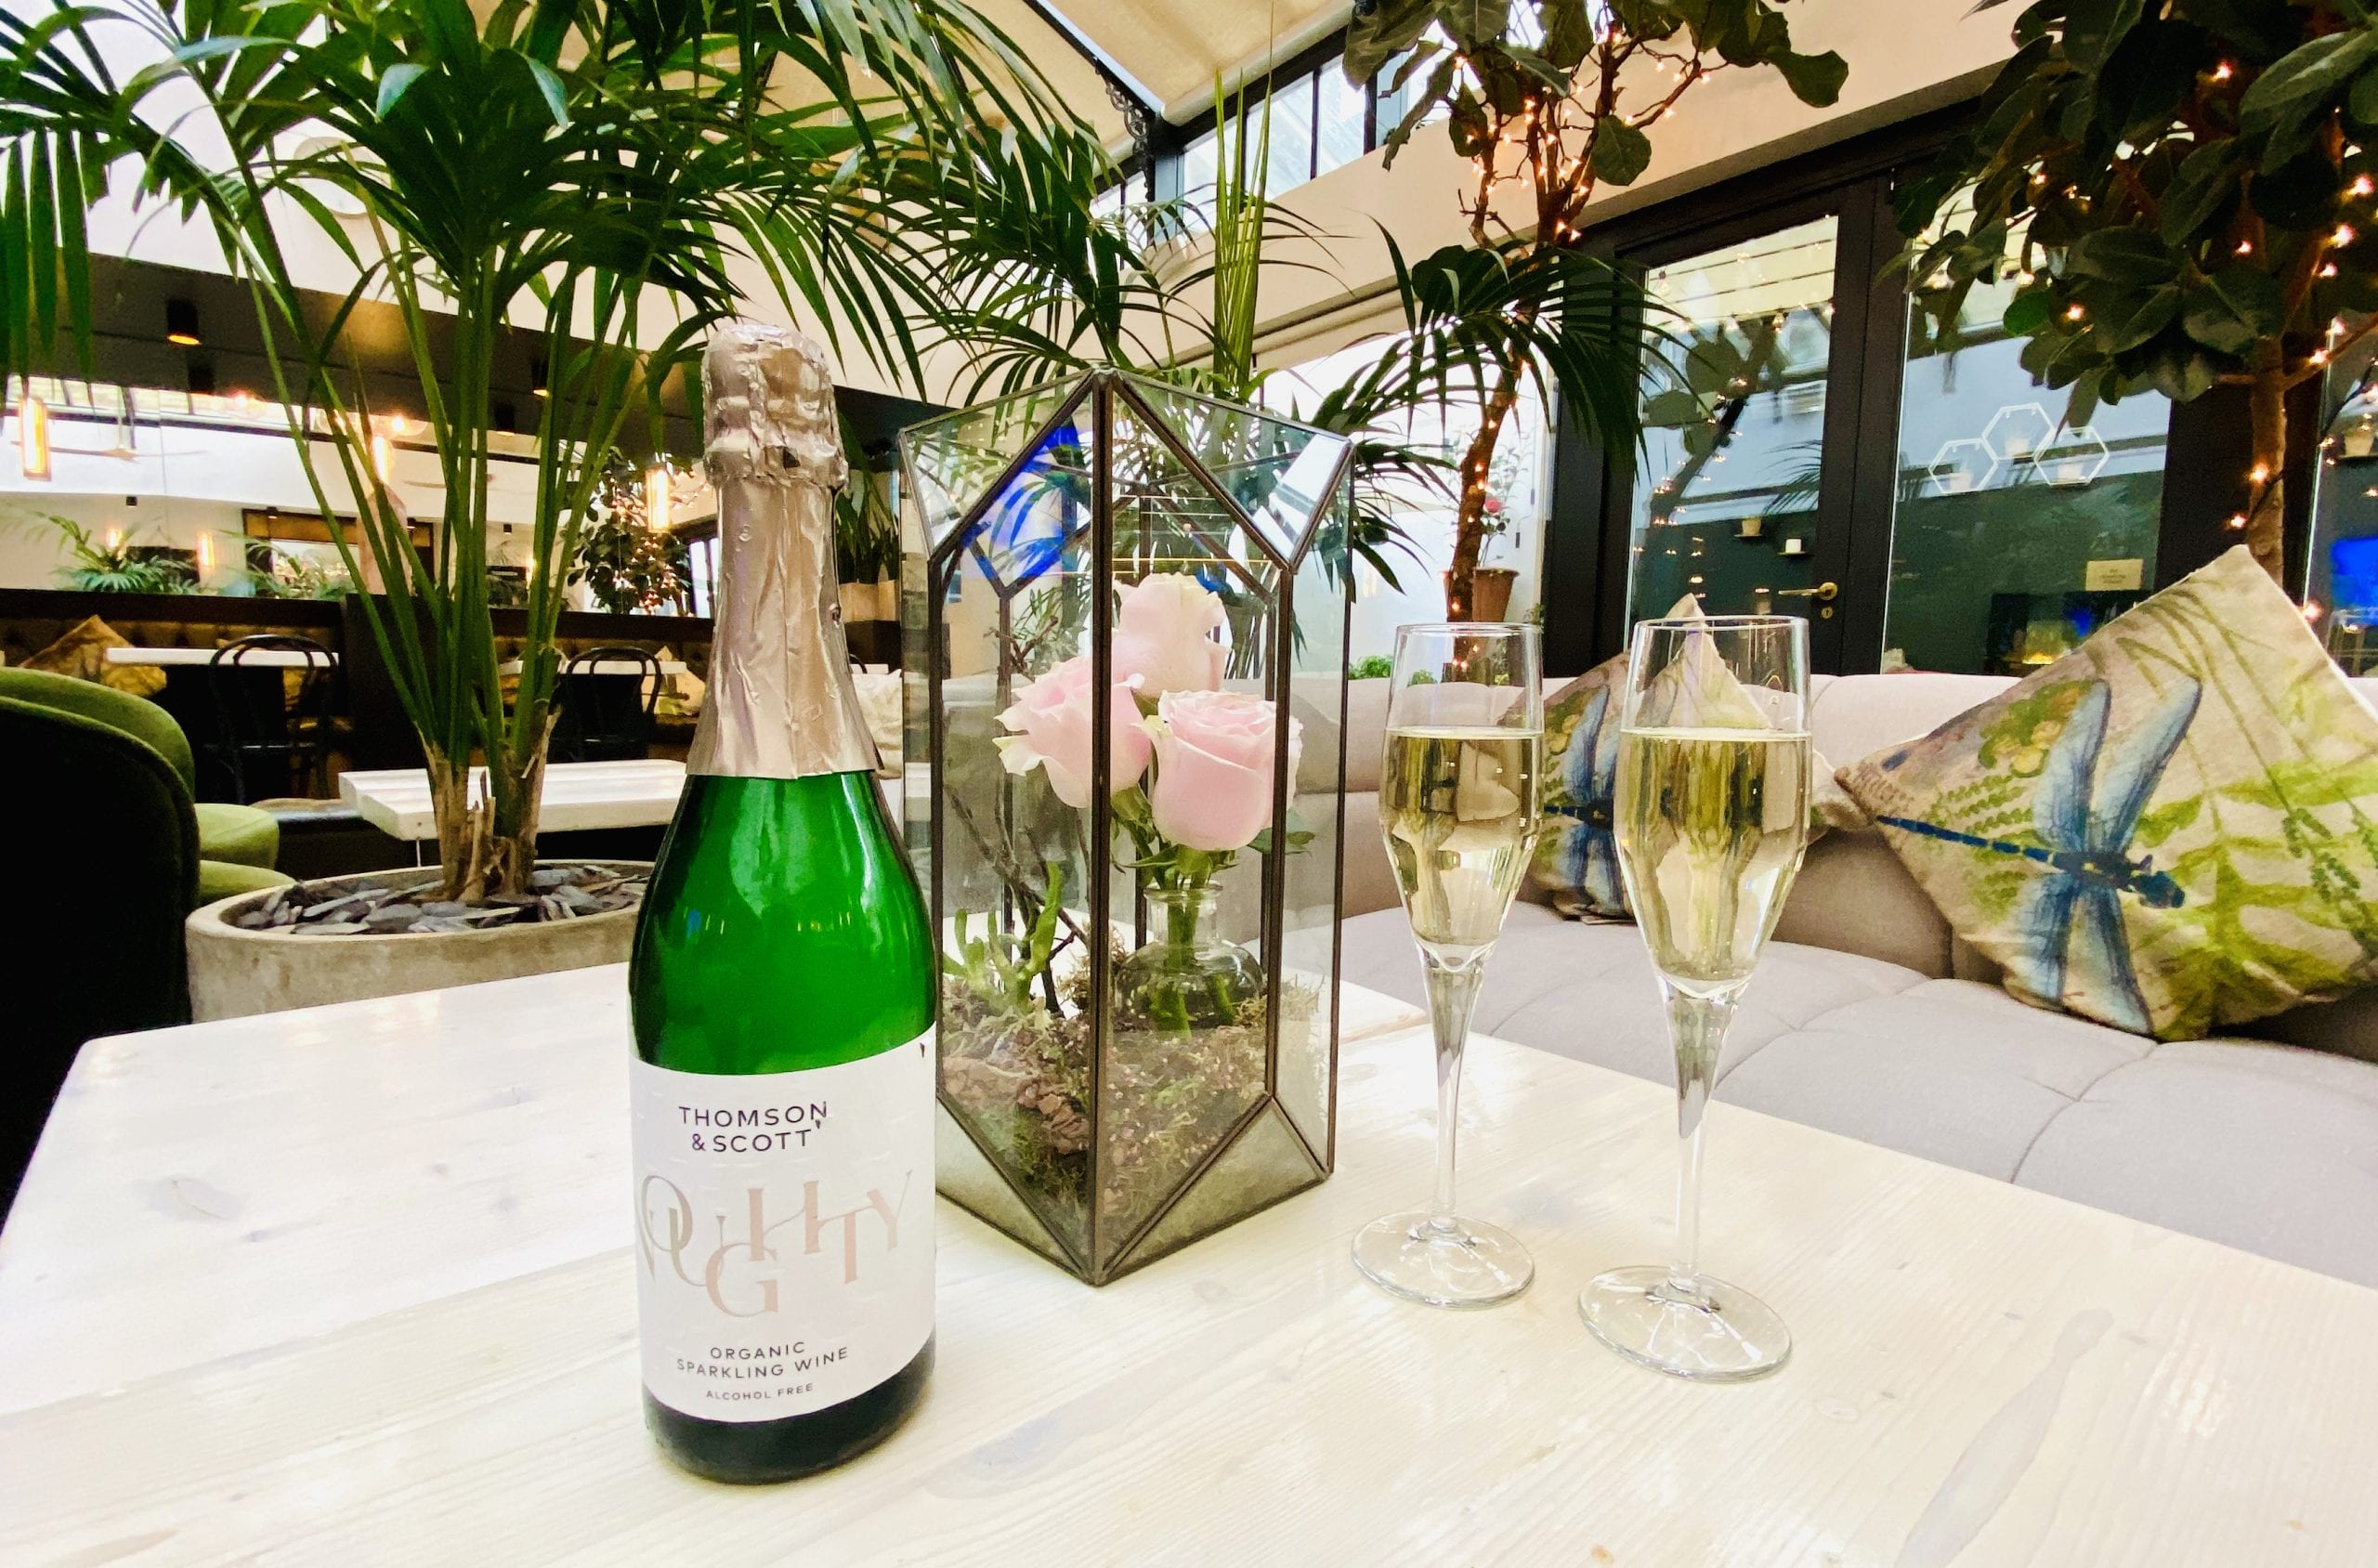 Bottle of Alcohol-Free Sparkling Wine and two glasses served in The Living Room at My Chelsea